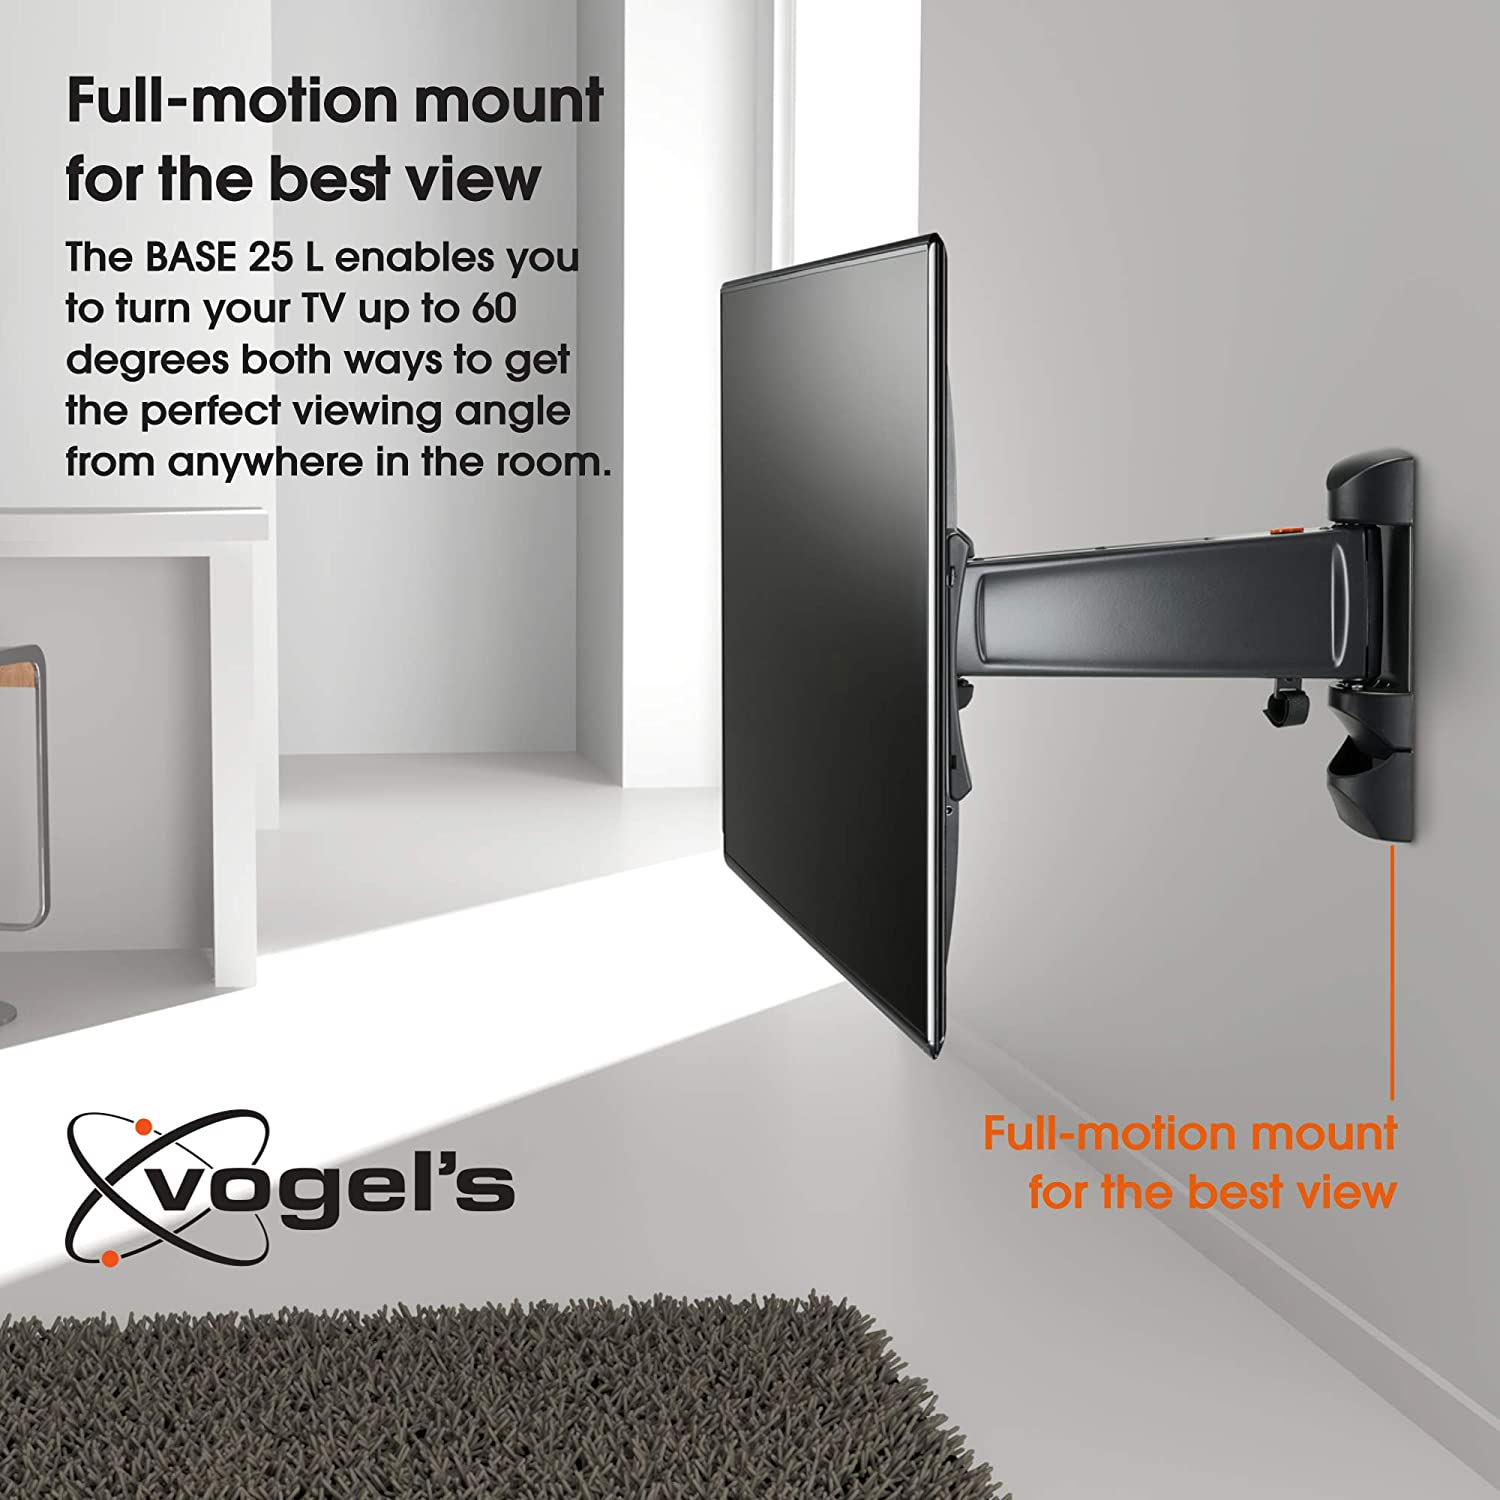 Vogels BASE 25 L, Soporte de pared para TV 40: Amazon.es: Electrónica